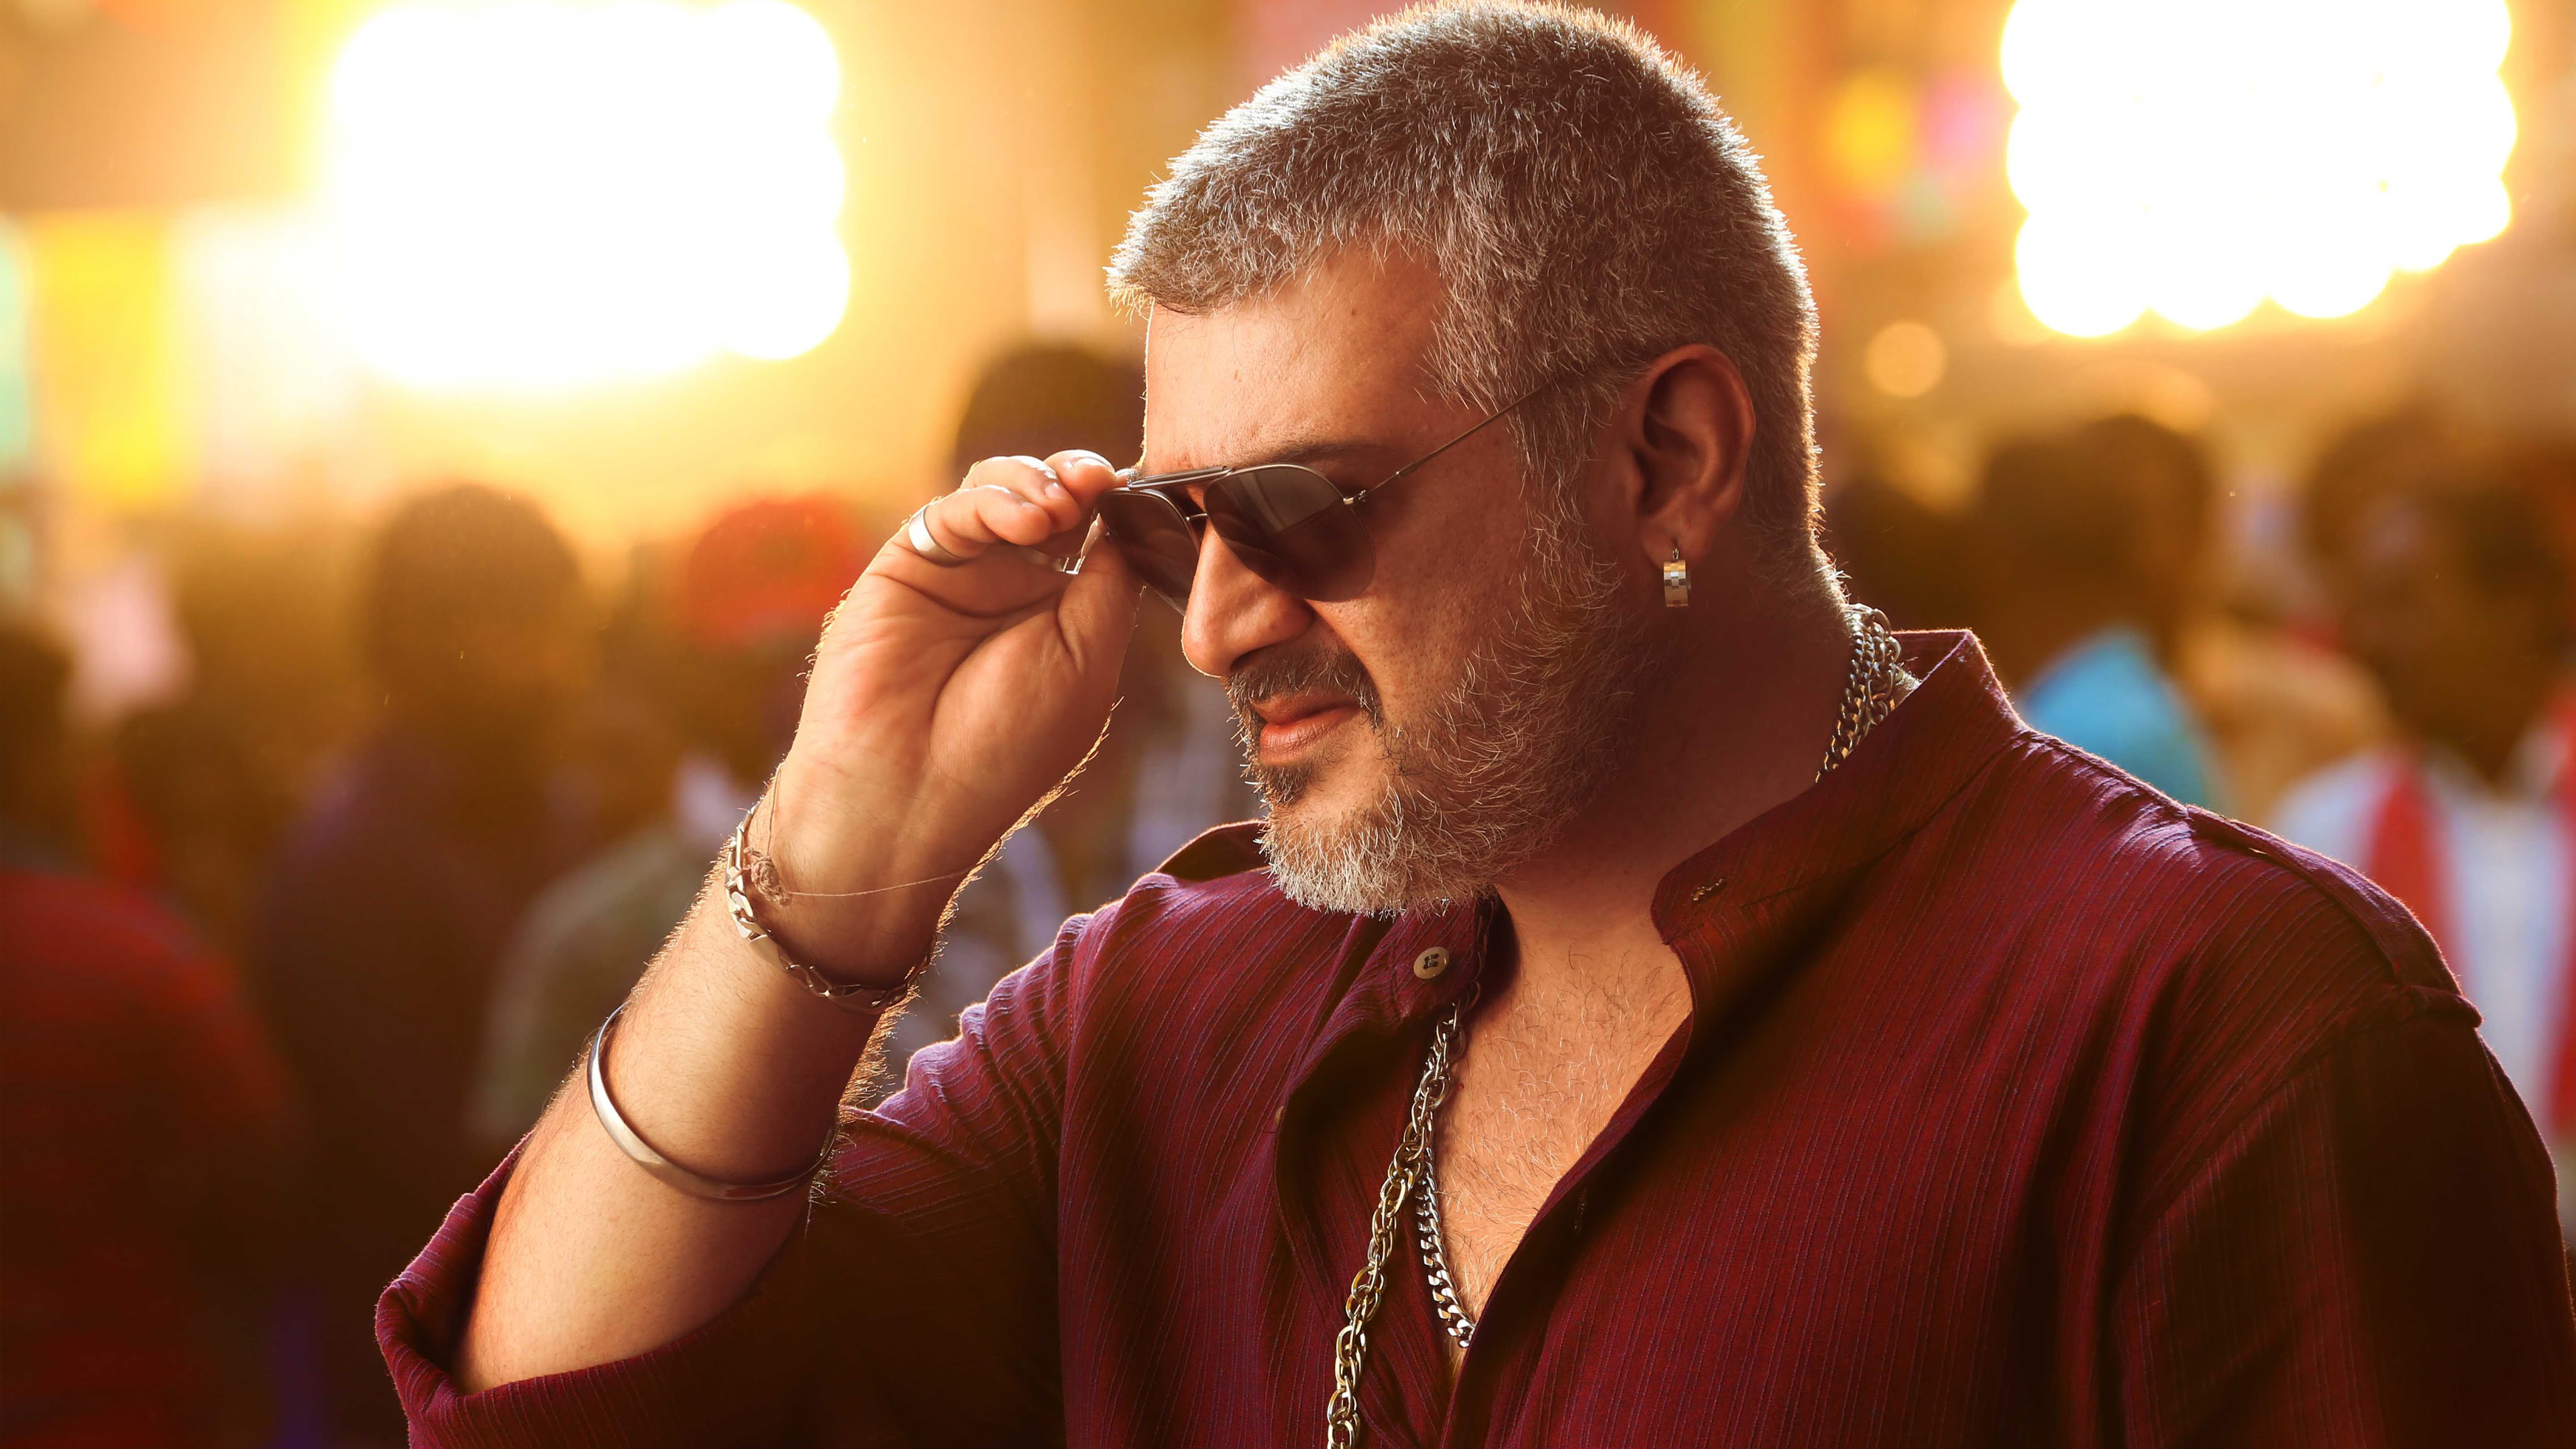 hd thala ajith mobile desktop wallpapers pics